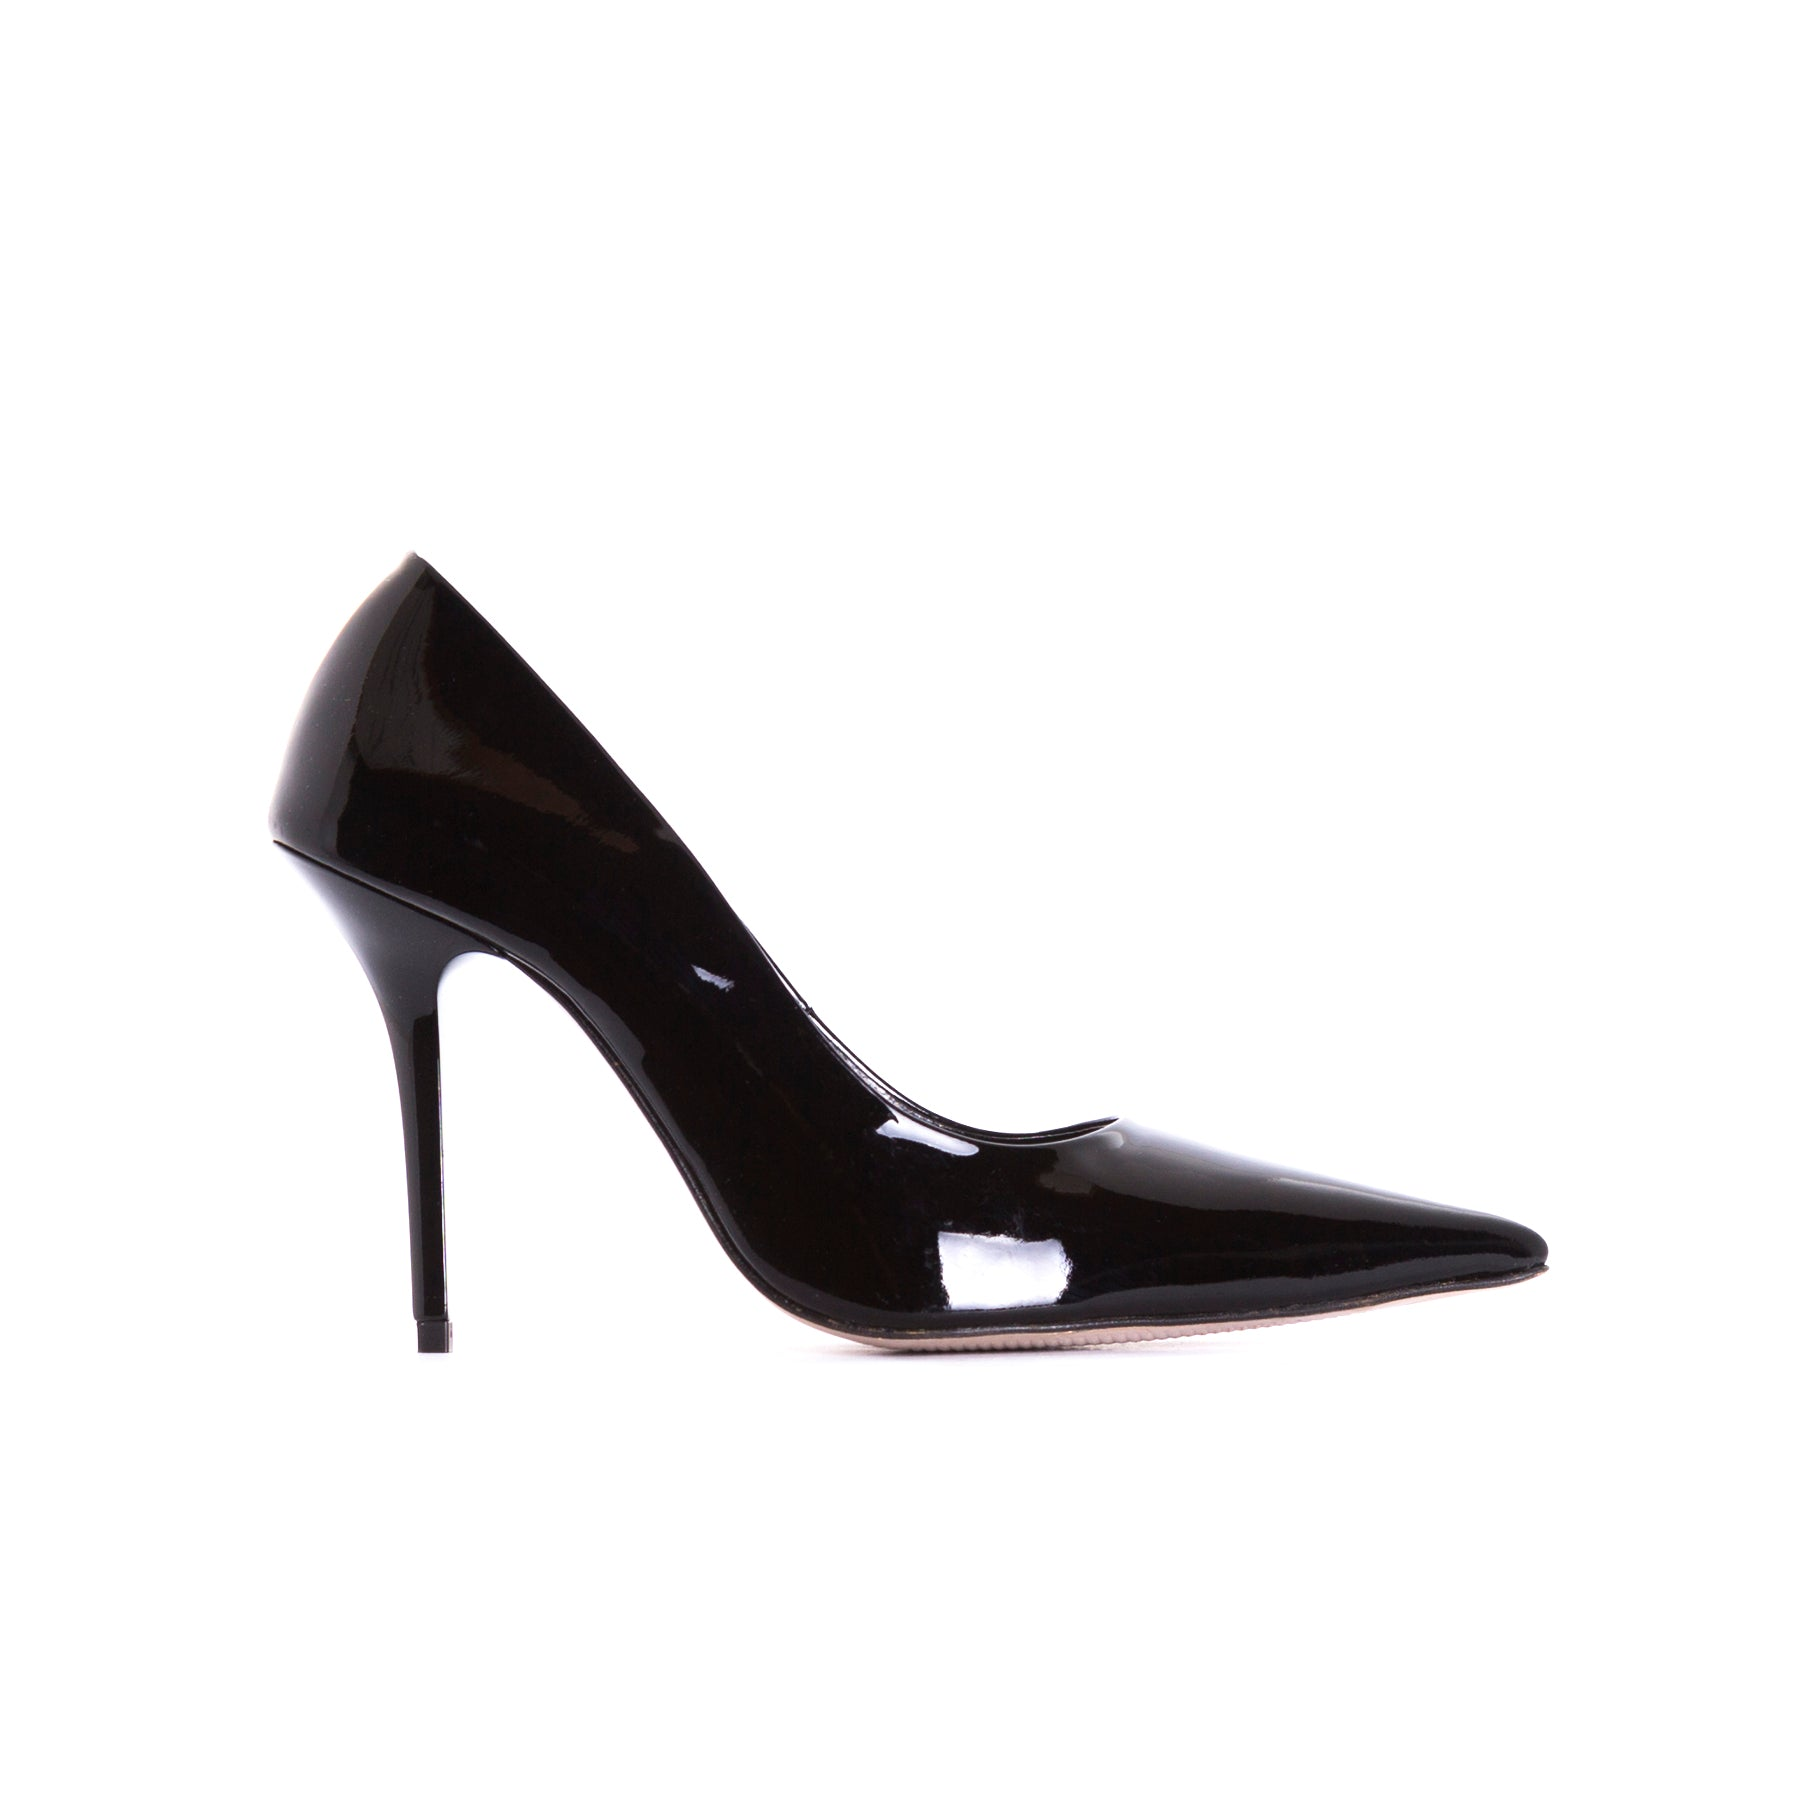 Devola Black Patent Pumps